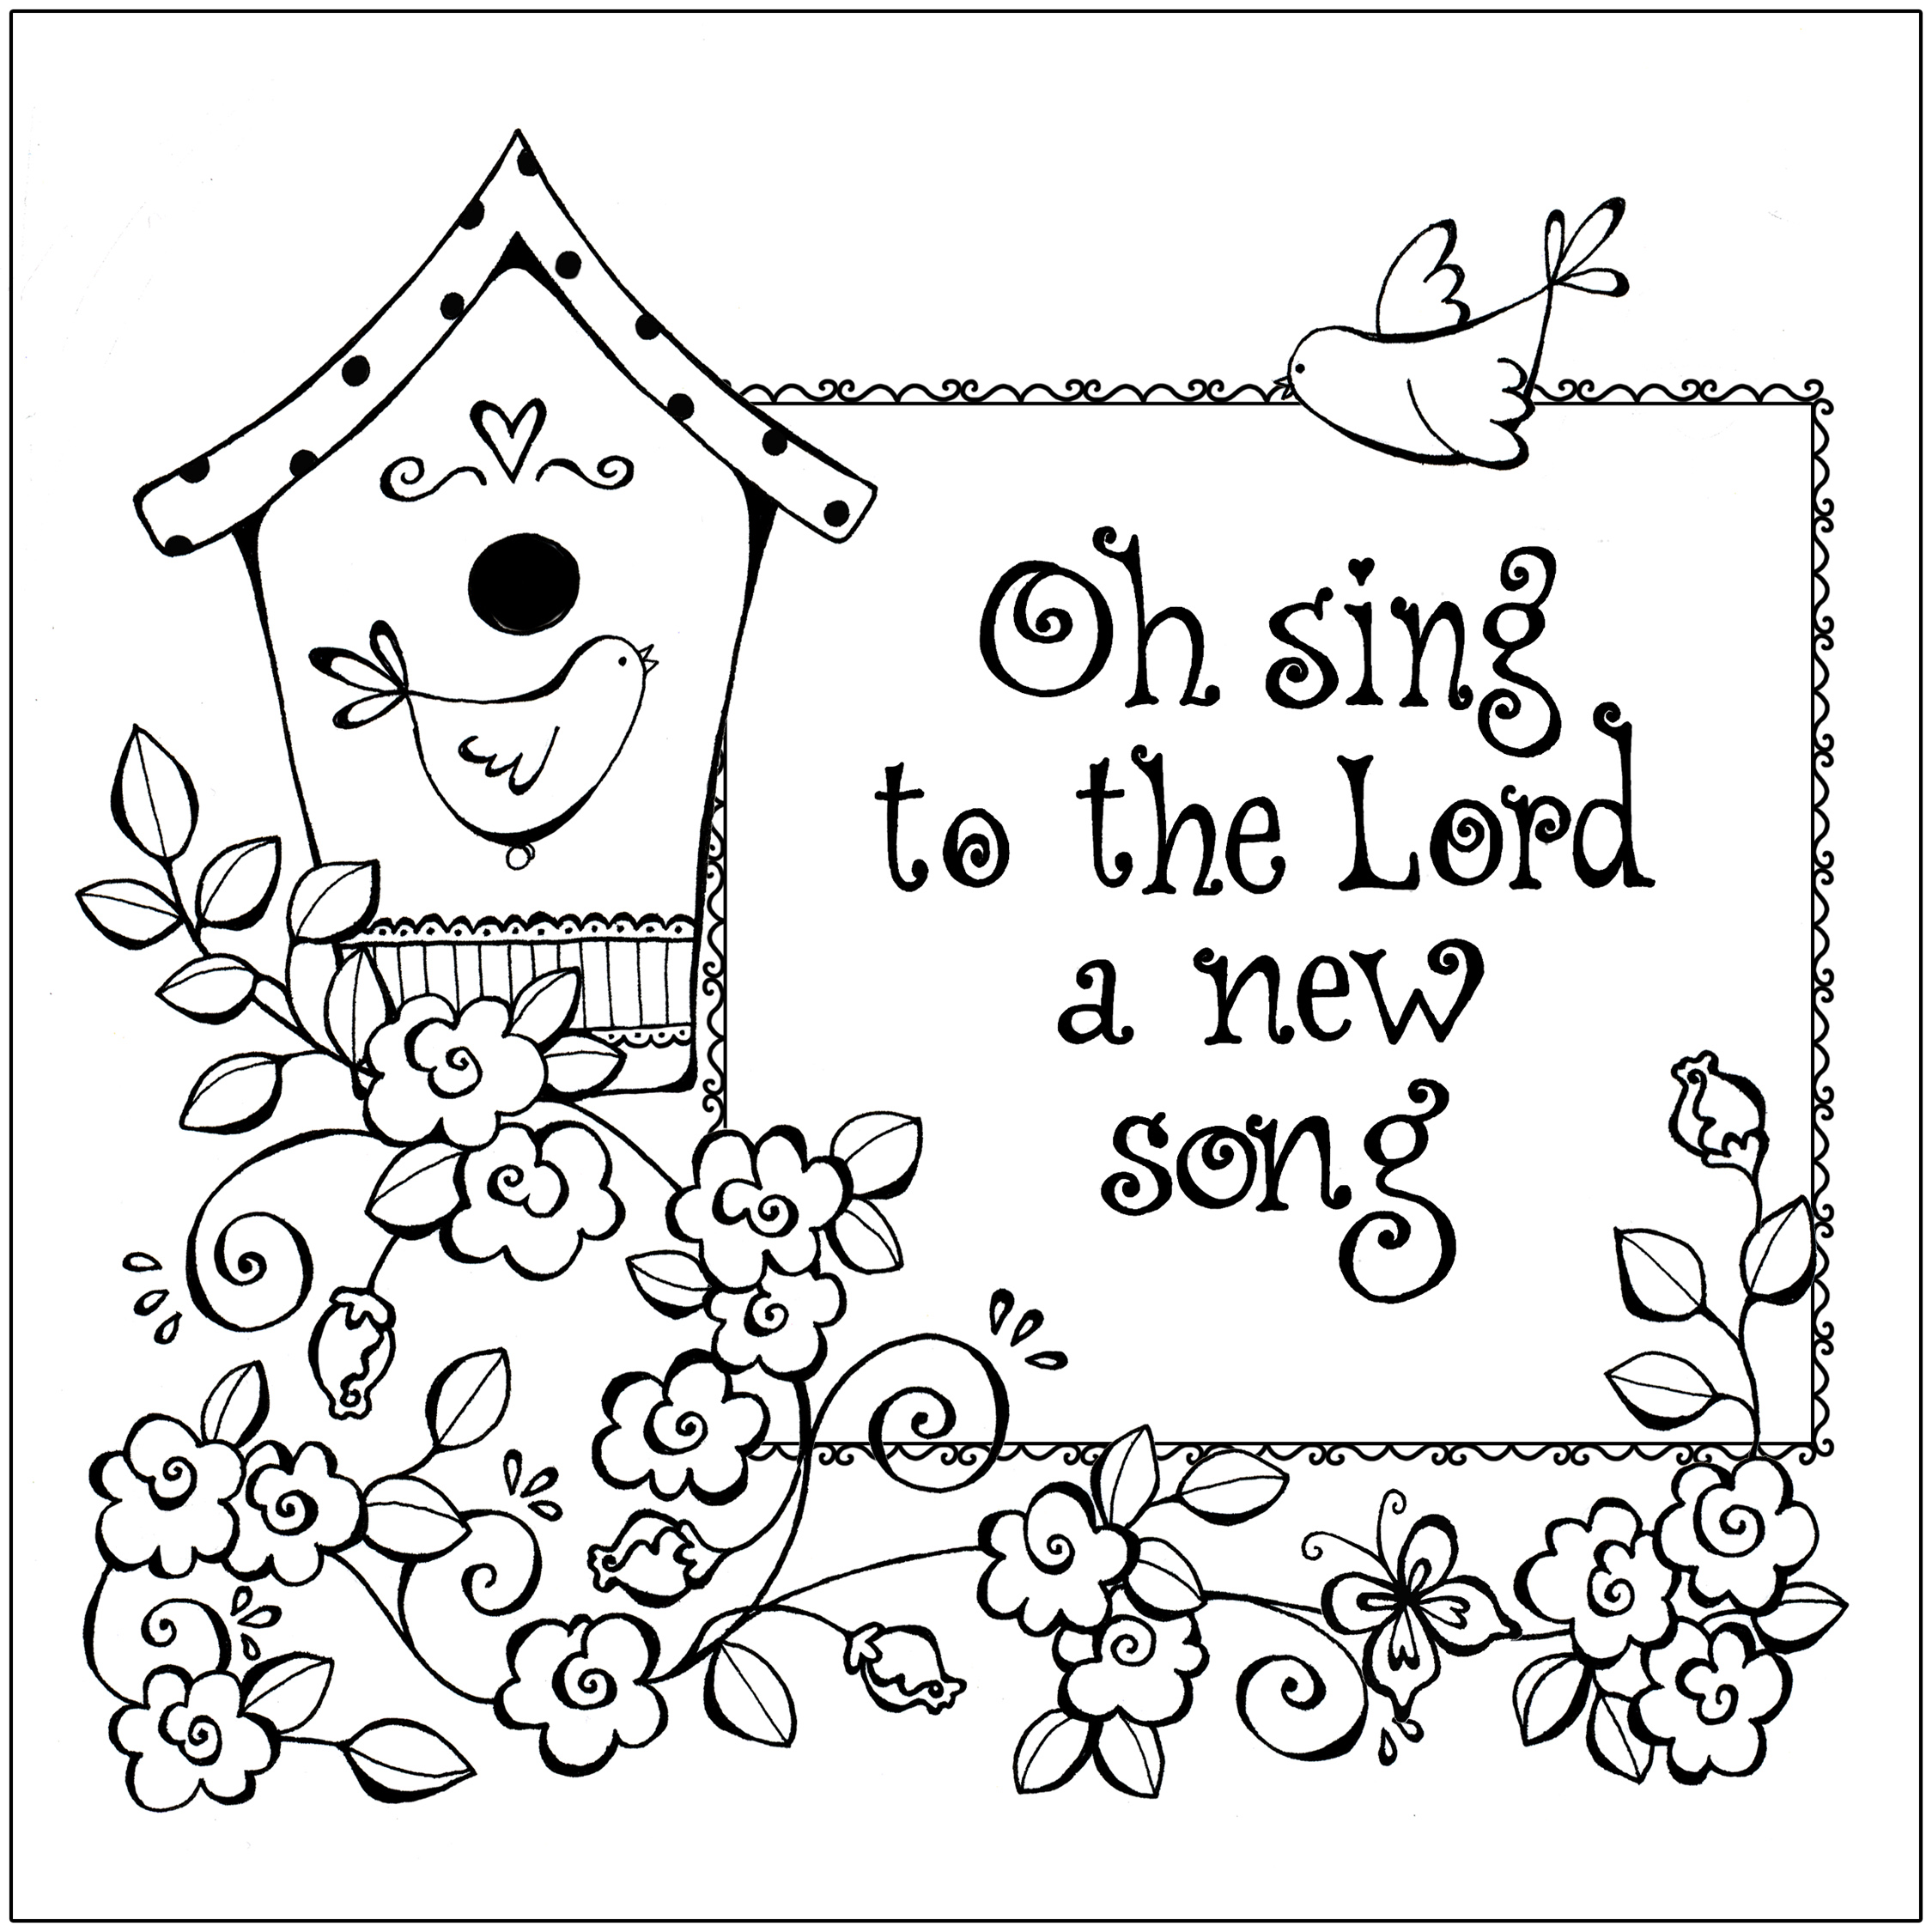 freee downloadable christian coloring pages - photo#4